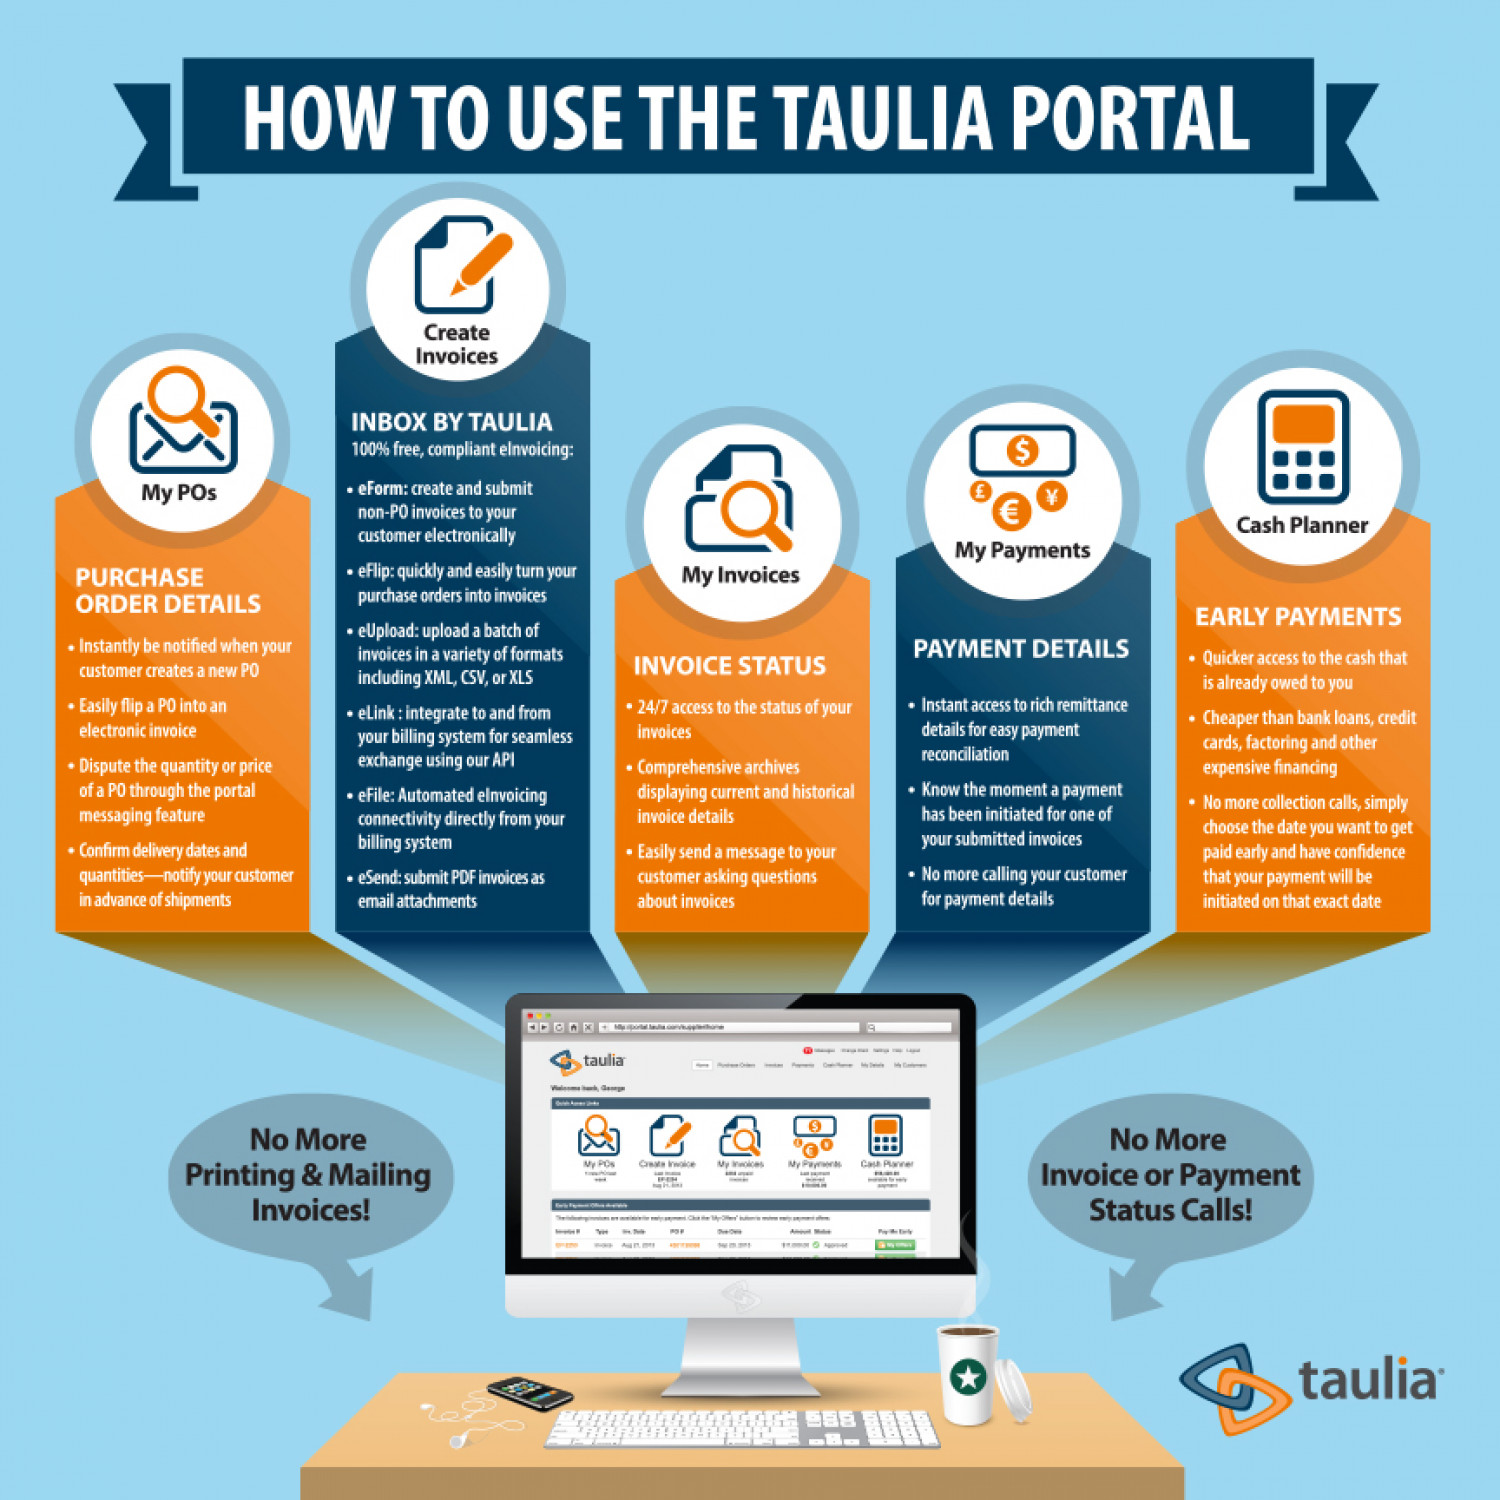 How to Use the Taulia Portal Infographic